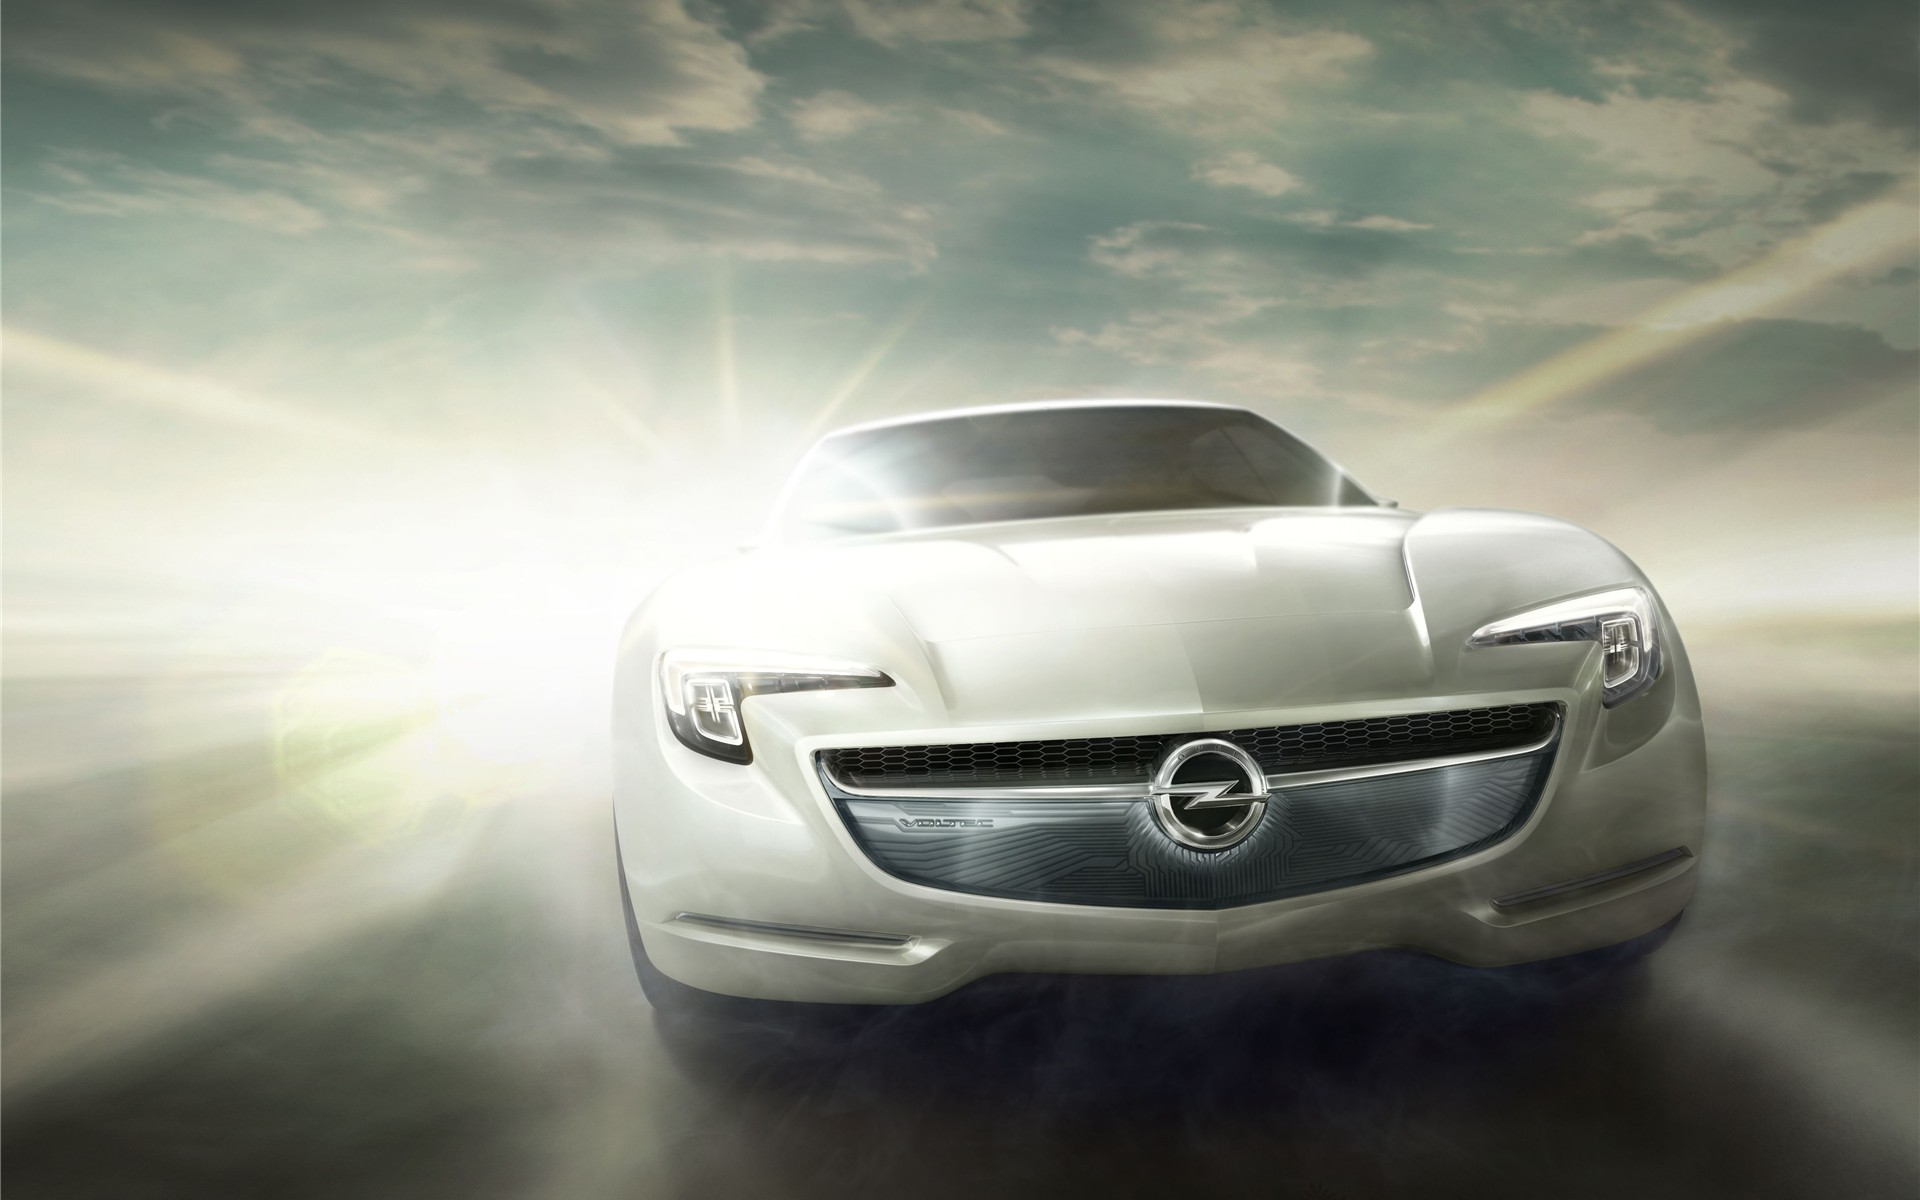 2019 Opel Flextreme Concept photo - 3